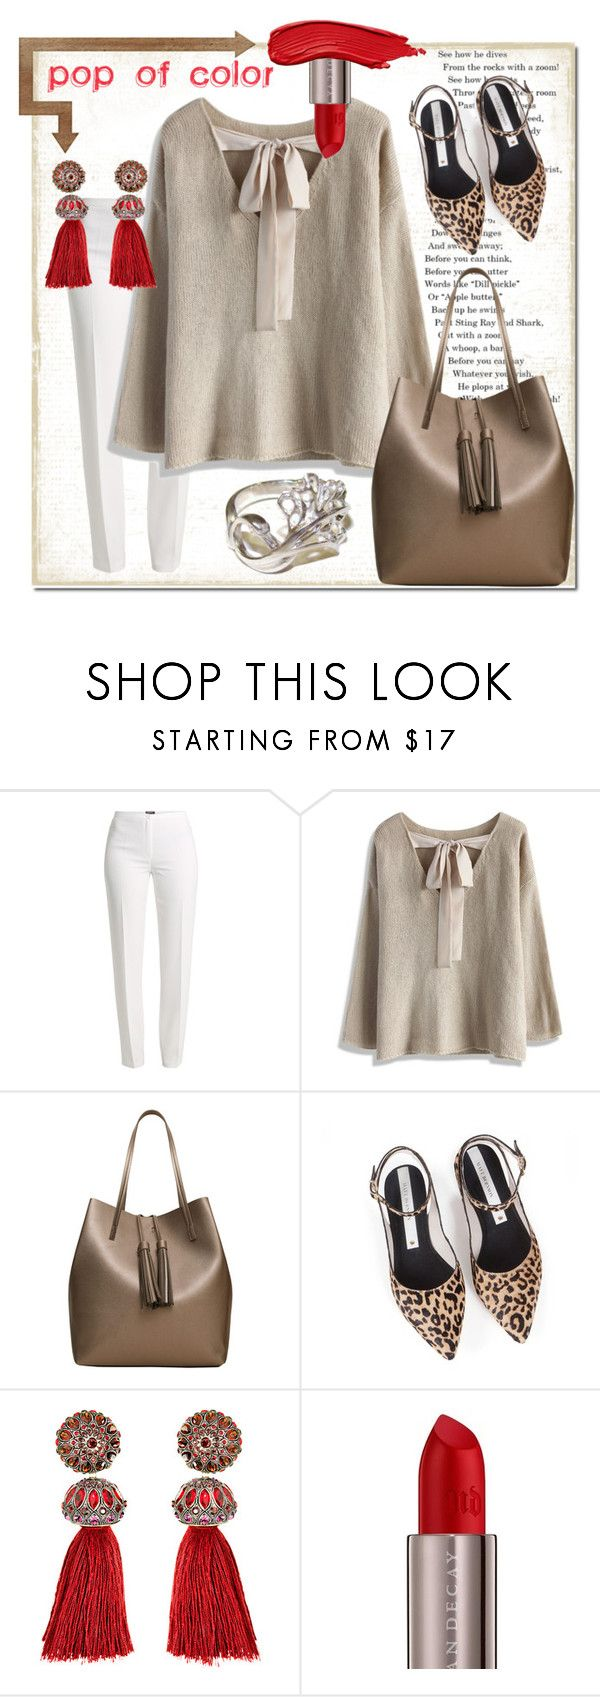 """Untitled #3475"" by kellie-debrandt-mescher ❤ liked on Polyvore featuring Basler, Chicwish, MANGO, Zolà, Lanvin and Urban Decay"